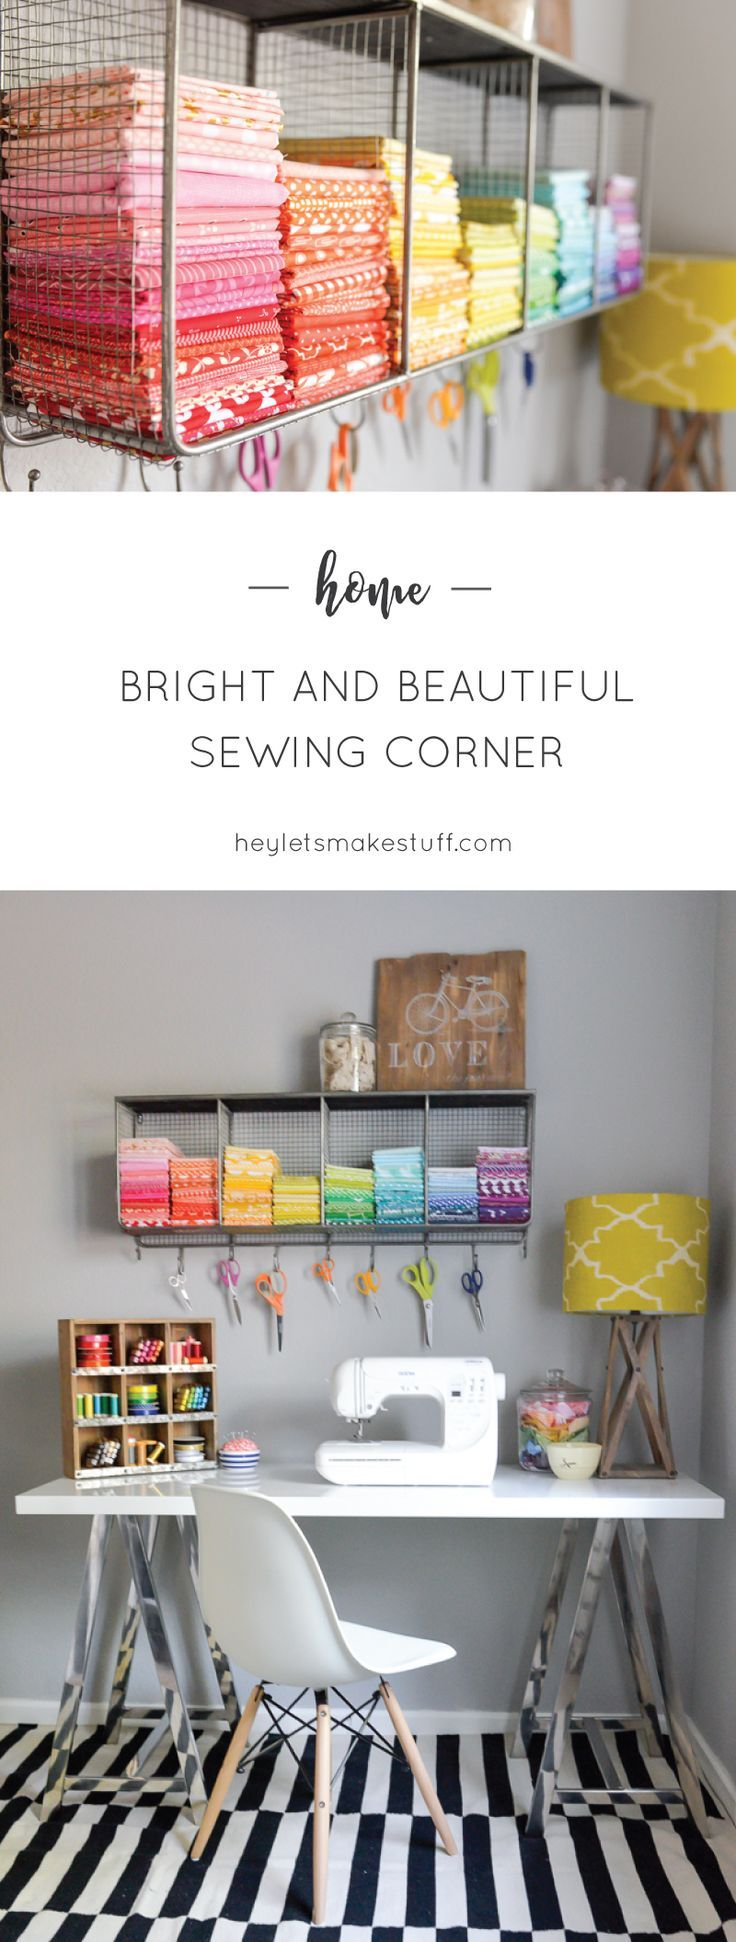 Took my boring sewing space and made it bright and fun, thanks to /worldmarket/! Loving all the fun details to showcase my space. #SpruceUpYourSpace #ad #WorldMarketTribe